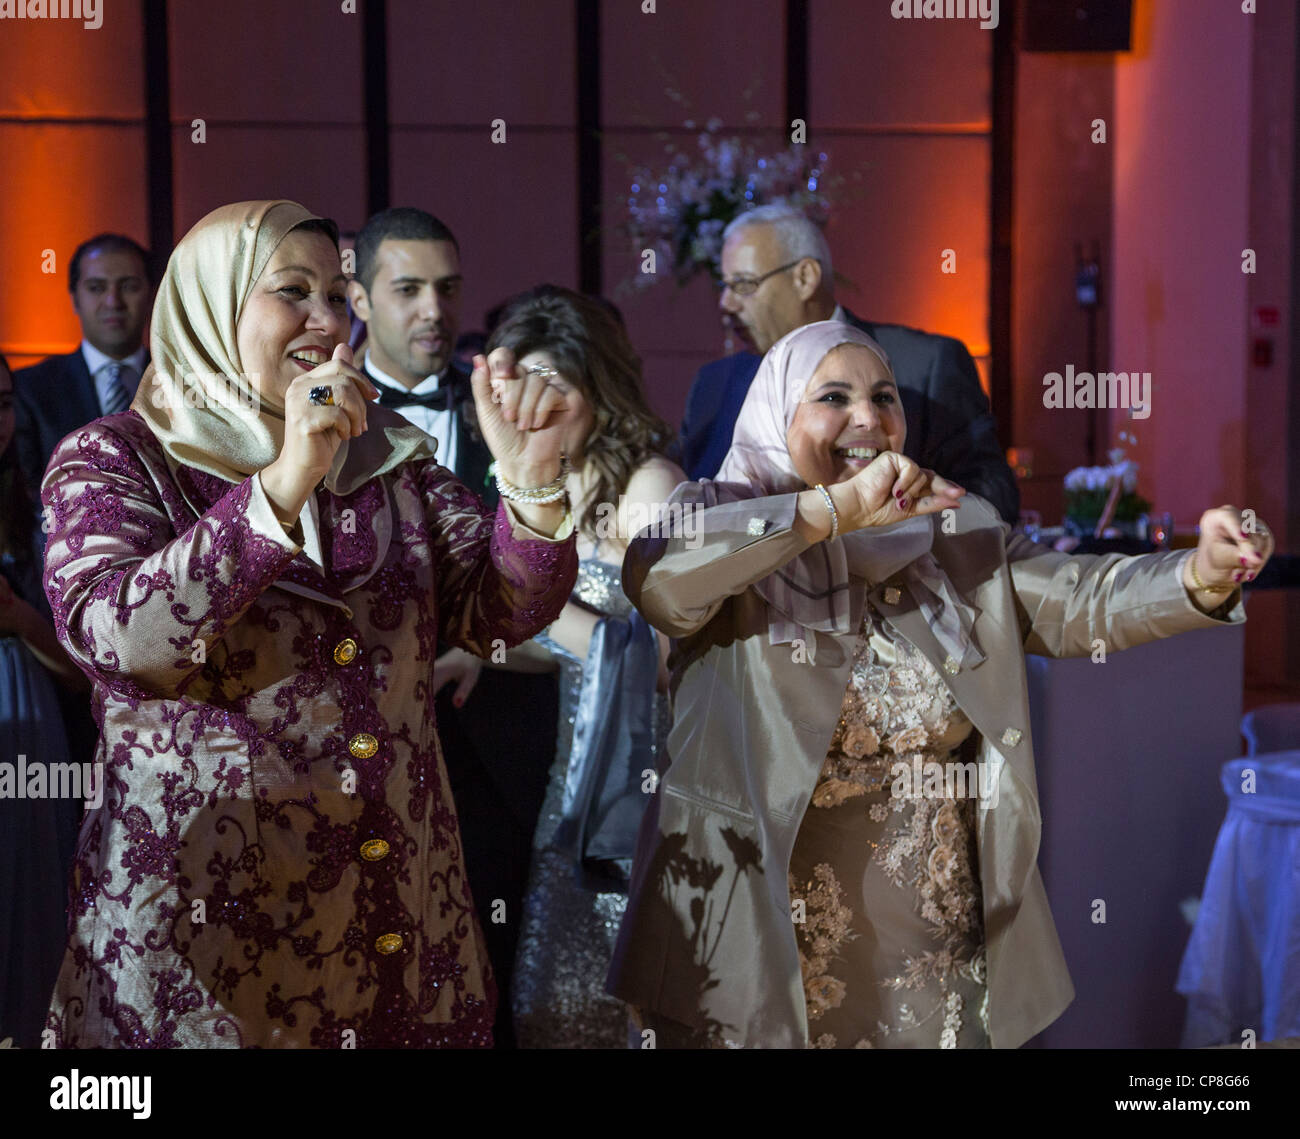 veiled middle-aged relatives of the bride and groom dancing at Egyptian wedding, Cairo, Egypt - Stock Image